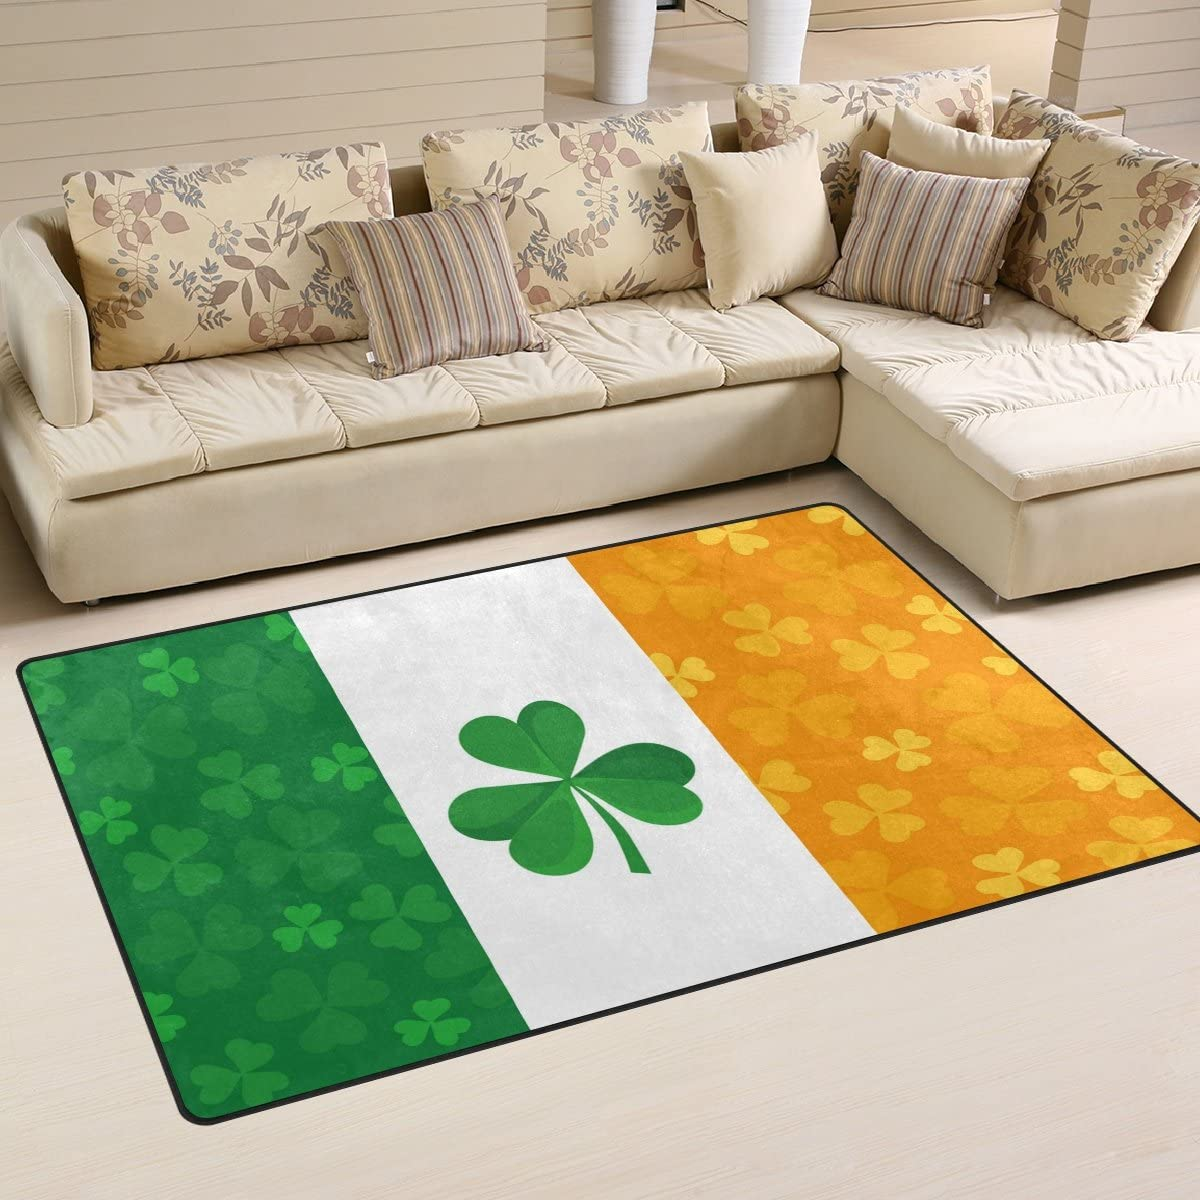 ALAZA Non-Slip Area Rugs Home Decor, Irish Flag with Shamrock Floor Mat Living Room Bedroom Carpets Doormats 60 x 39 inches